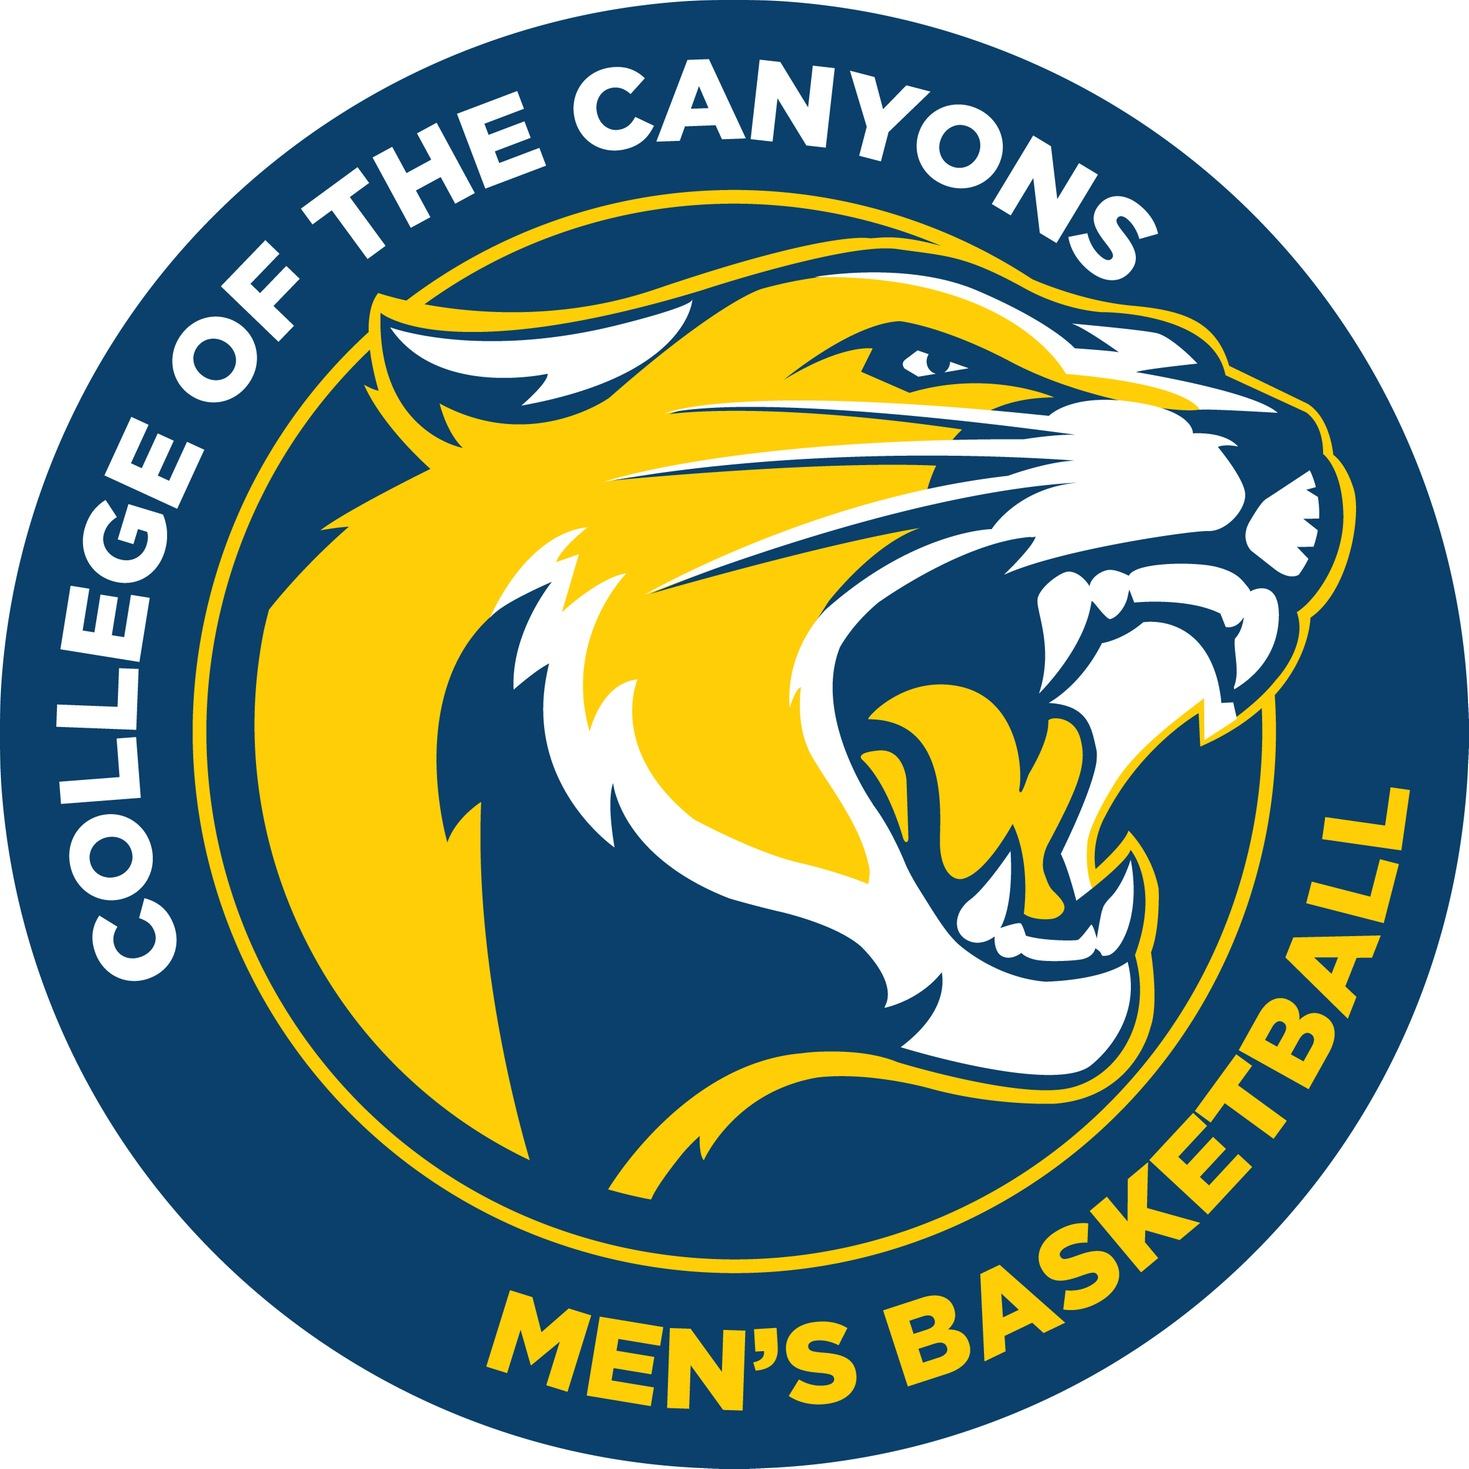 College of the Canyons men's basketball logo.